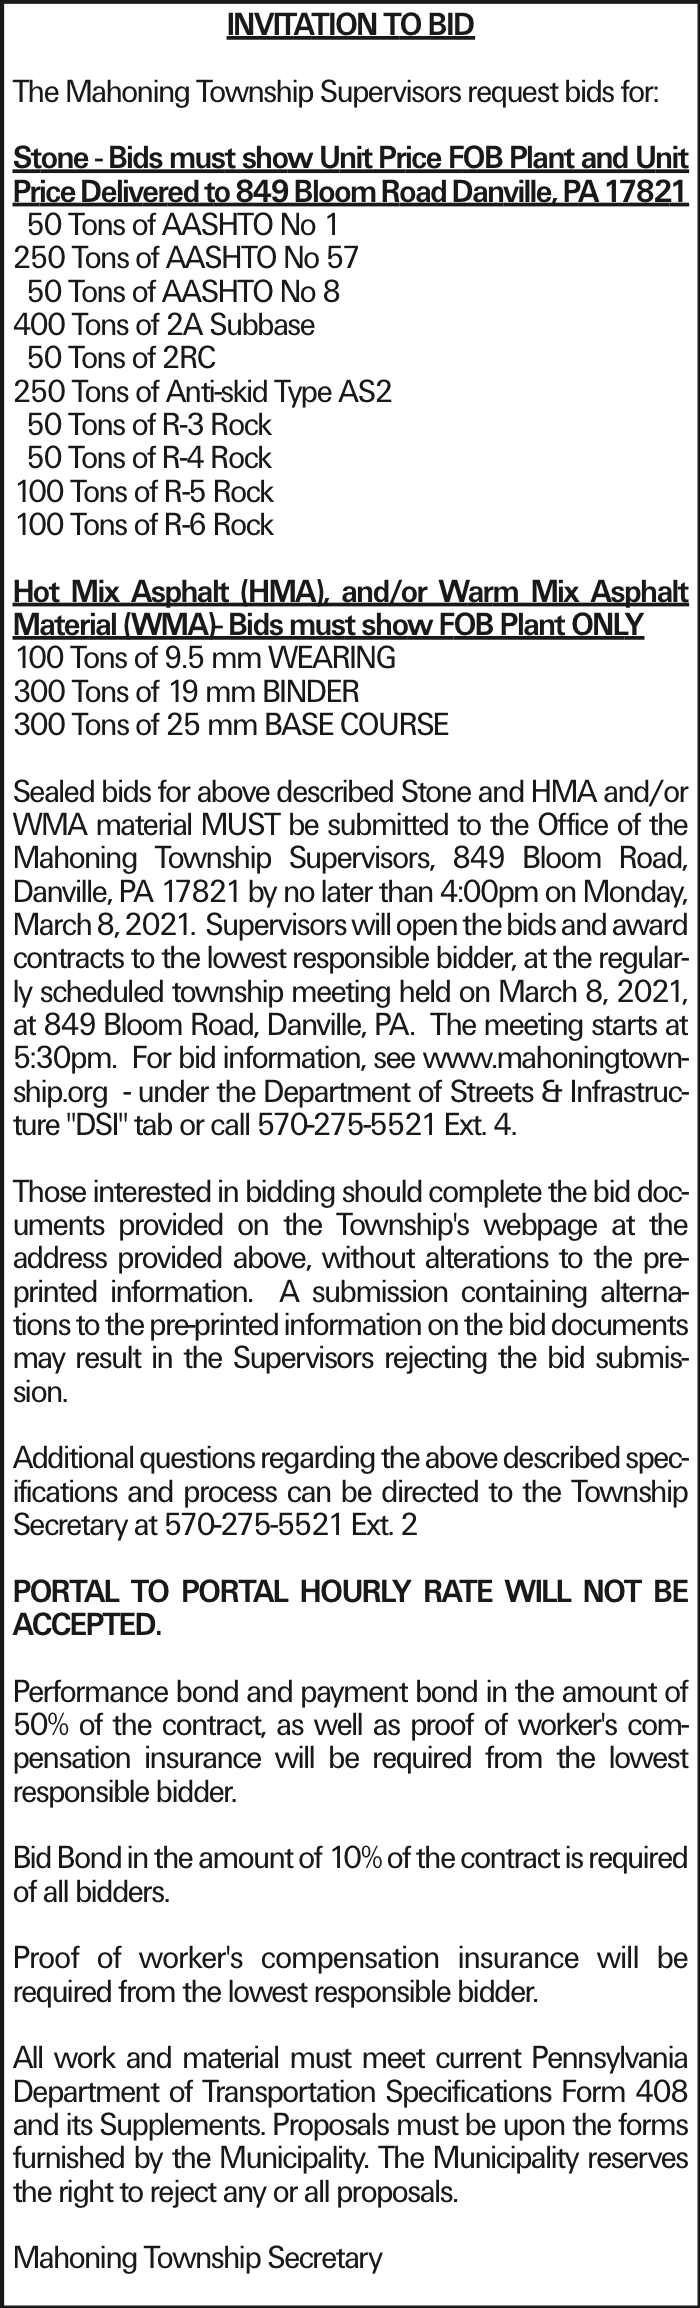 """INVITATION TO BID The Mahoning Township Supervisors request bids for: Stone - Bids must show Unit Price FOB Plant and Unit Price Delivered to 849 Bloom Road Danville, PA 17821 50 Tons of AASHTO No 1 250 Tons of AASHTO No 57 50 Tons of AASHTO No 8 400 Tons of 2A Subbase 50 Tons of 2RC 250 Tons of Anti-skid Type AS2 50 Tons of R-3 Rock 50 Tons of R-4 Rock 100 Tons of R-5 Rock 100 Tons of R-6 Rock Hot Mix Asphalt (HMA), and/or Warm Mix Asphalt Material (WMA)- Bids must show FOB Plant ONLY 100 Tons of 9.5 mm WEARING 300 Tons of 19 mm BINDER 300 Tons of 25 mm BASE COURSE Sealed bids for above described Stone and HMA and/or WMA material MUST be submitted to the Office of the Mahoning Township Supervisors, 849 Bloom Road, Danville, PA 17821 by no later than 4:00pm on Monday, March 8, 2021. Supervisors will open the bids and award contracts to the lowest responsible bidder, at the regularly scheduled township meeting held on March 8, 2021, at 849 Bloom Road, Danville, PA. The meeting starts at 5:30pm. For bid information, see www.mahoningtownship.org - under the Department of Streets & Infrastructure """"DSI"""" tab or call 570-275-5521 Ext. 4. Those interested in bidding should complete the bid documents provided on the Township's webpage at the address provided above, without alterations to the pre-printed information. A submission containing alternations to the pre-printed information on the bid documents may result in the Supervisors rejecting the bid submission. Additional questions regarding the above described specifications and process can be directed to the Township Secretary at 570-275-5521 Ext. 2 PORTAL TO PORTAL HOURLY RATE WILL NOT BE ACCEPTED. Performance bond and payment bond in the amount of 50% of the contract, as well as proof of worker's compensation insurance will be required from the lowest responsible bidder. Bid Bond in the amount of 10% of the contract is required of all bidders. Proof of worker's compensation insurance will be required from the lowest res"""